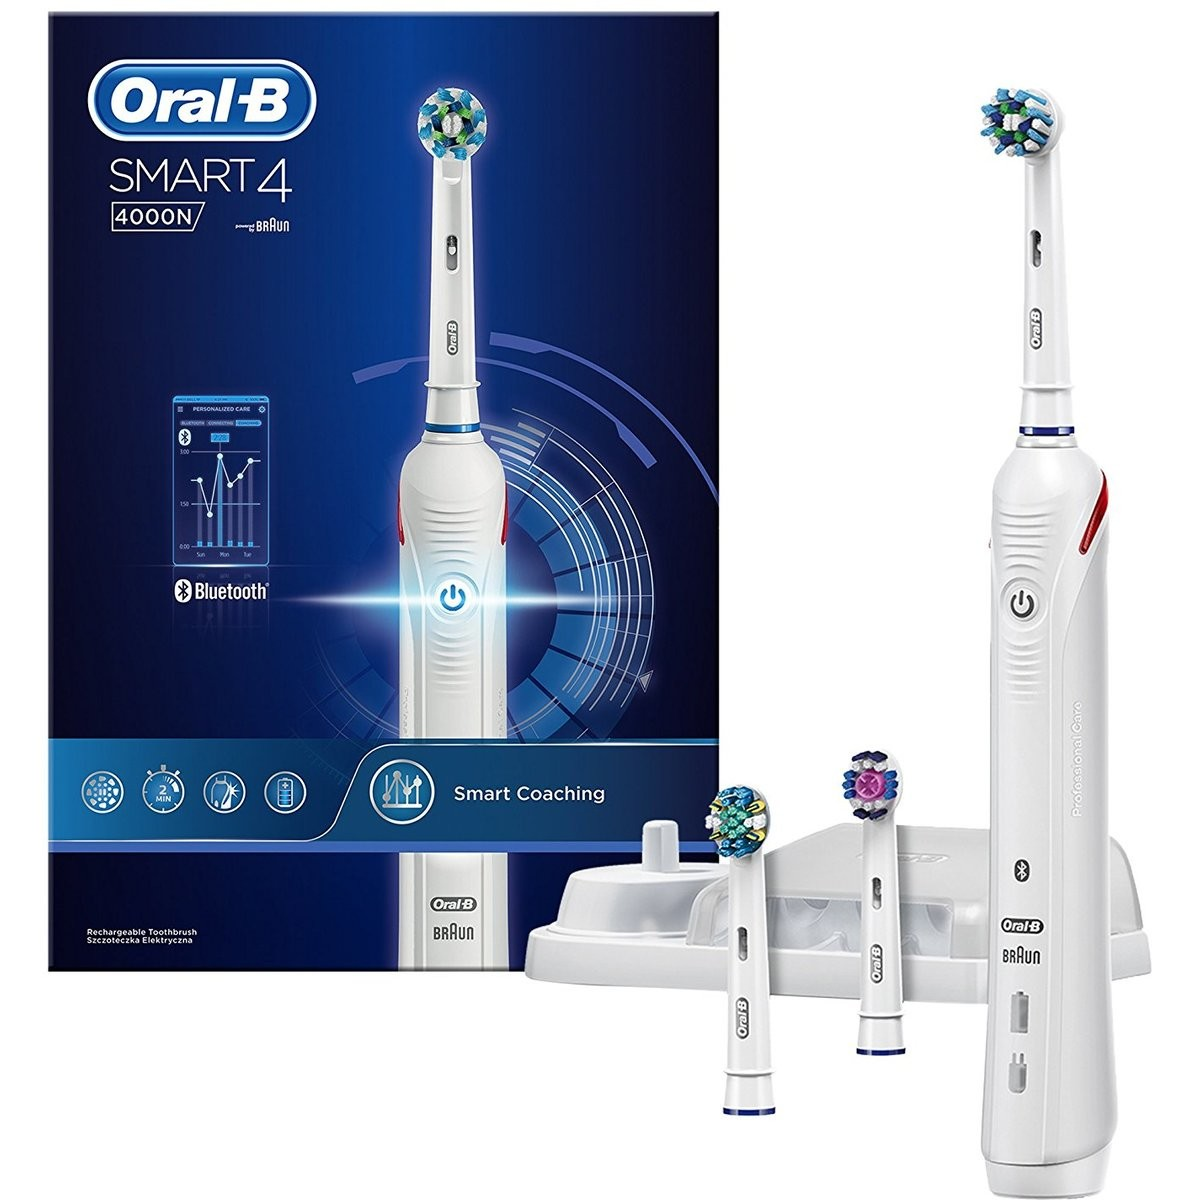 Big W Electric Toothbrush Oral B Smart 4 4000 Electric Toothbrush White